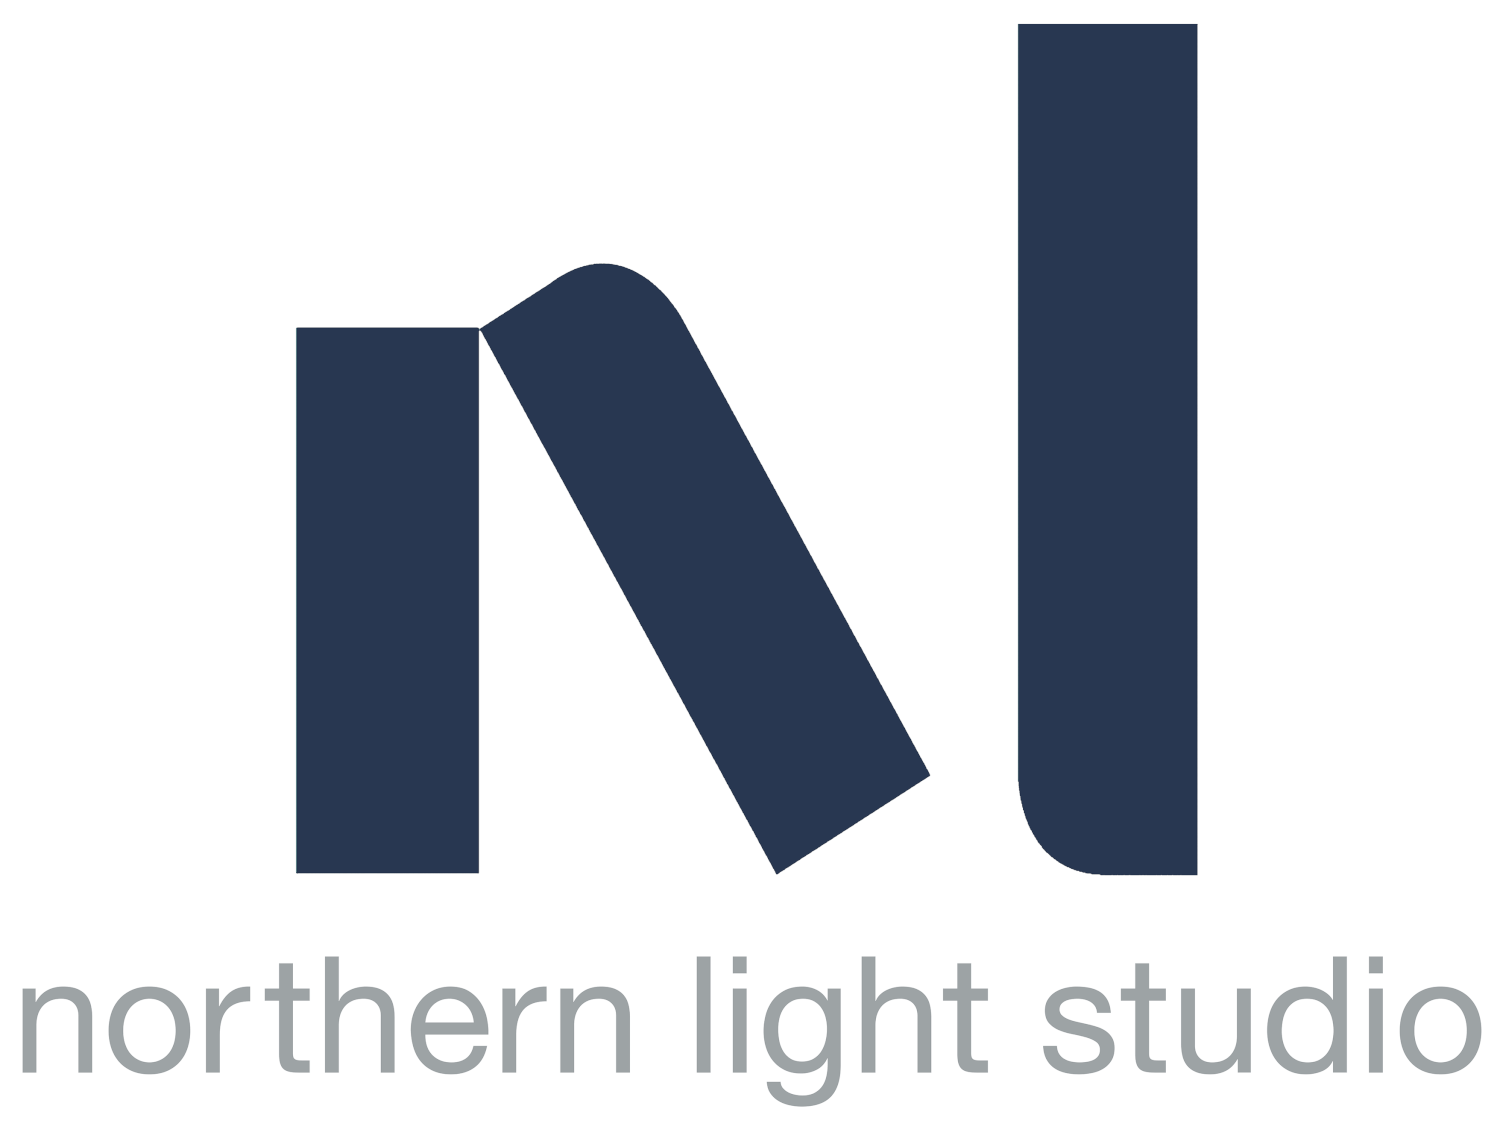 Northern Light Studio